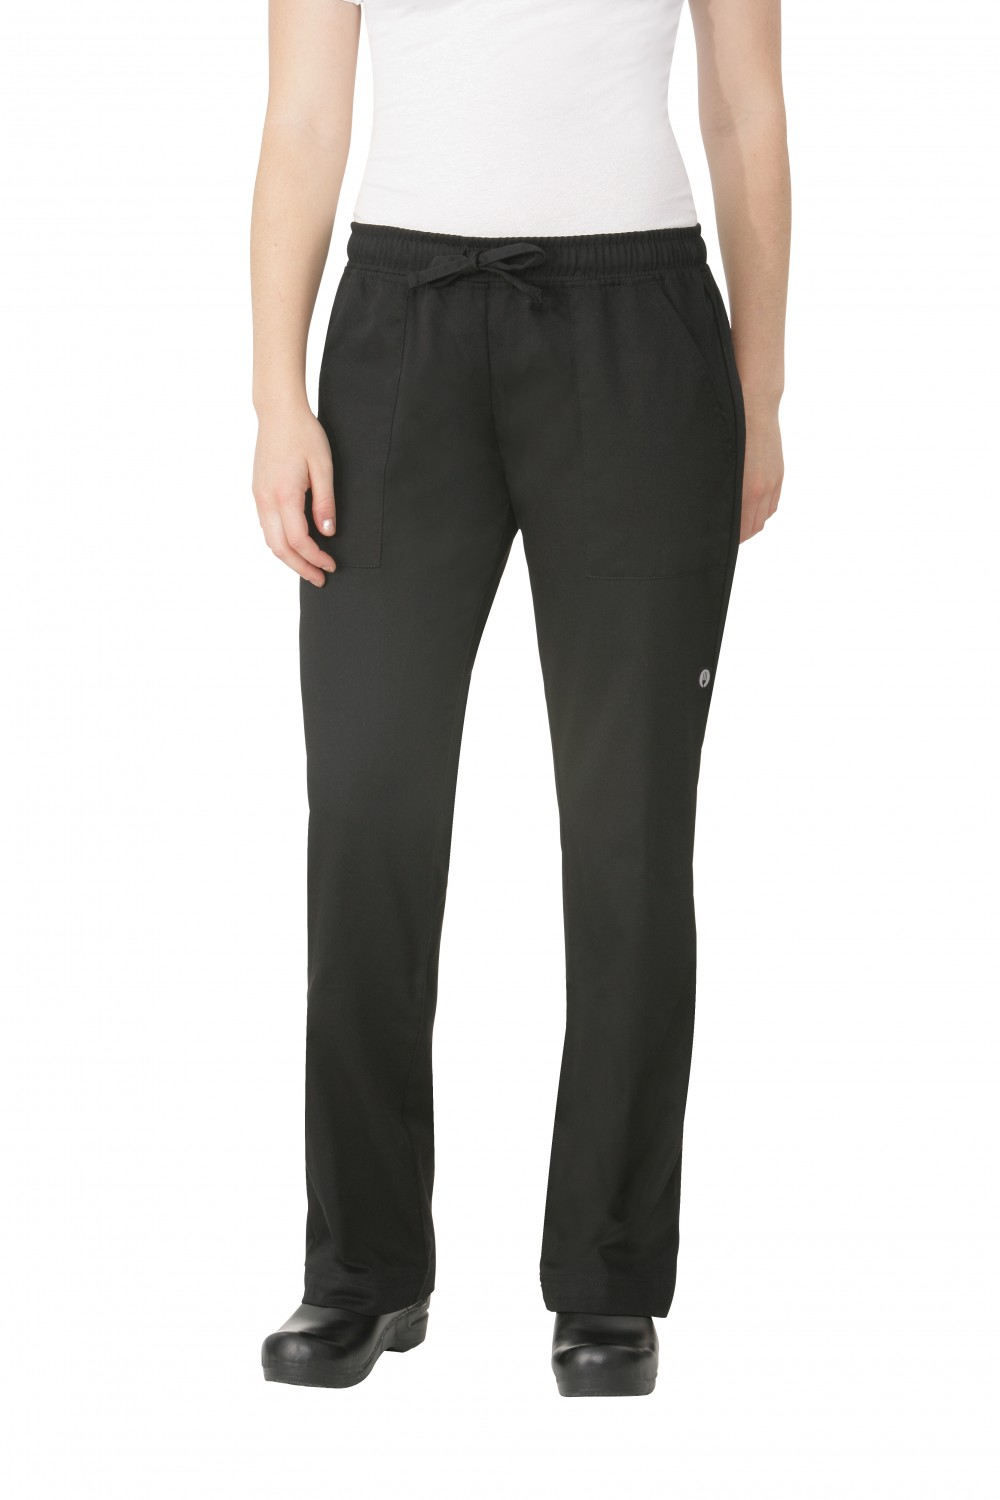 Chef Works WBLK Women's Chef Pants, Black